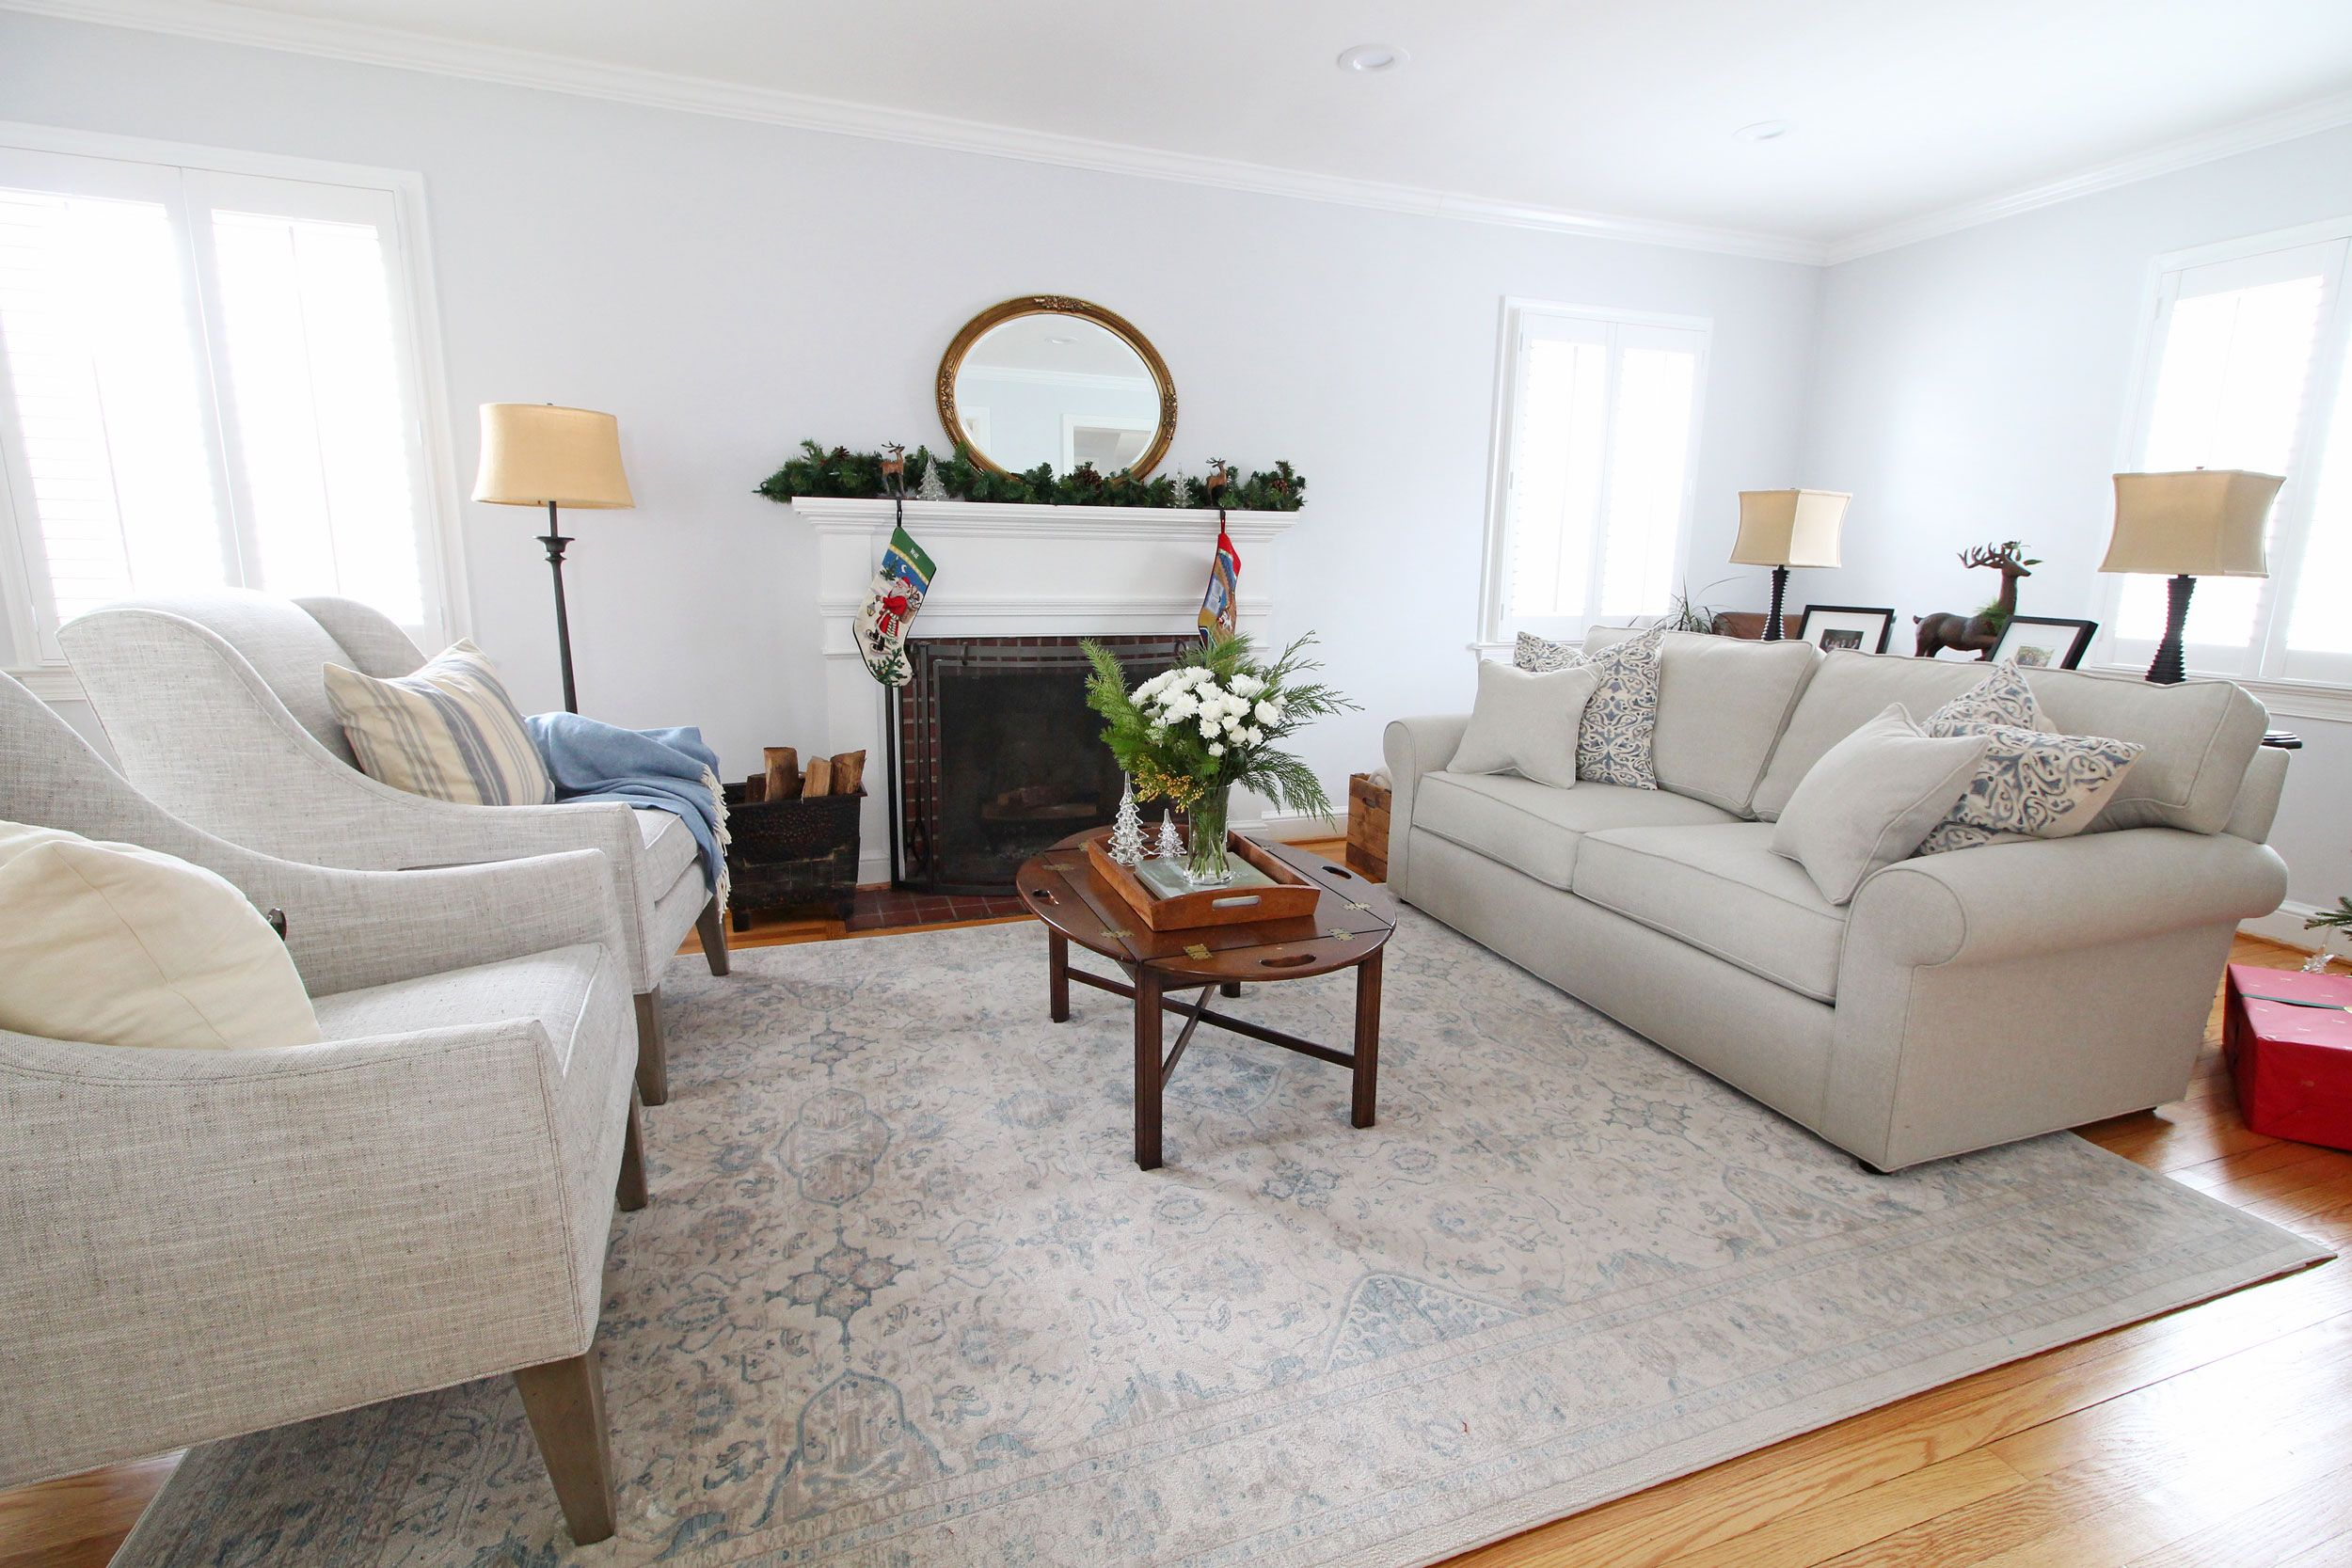 A Transitional Farmhouse Living Room The Blue Cream And Gray Color Scheme Feels Fresh And Clean This Living Room Color Schemes Home Decor Styles Home Decor #transitional #farmhouse #living #room